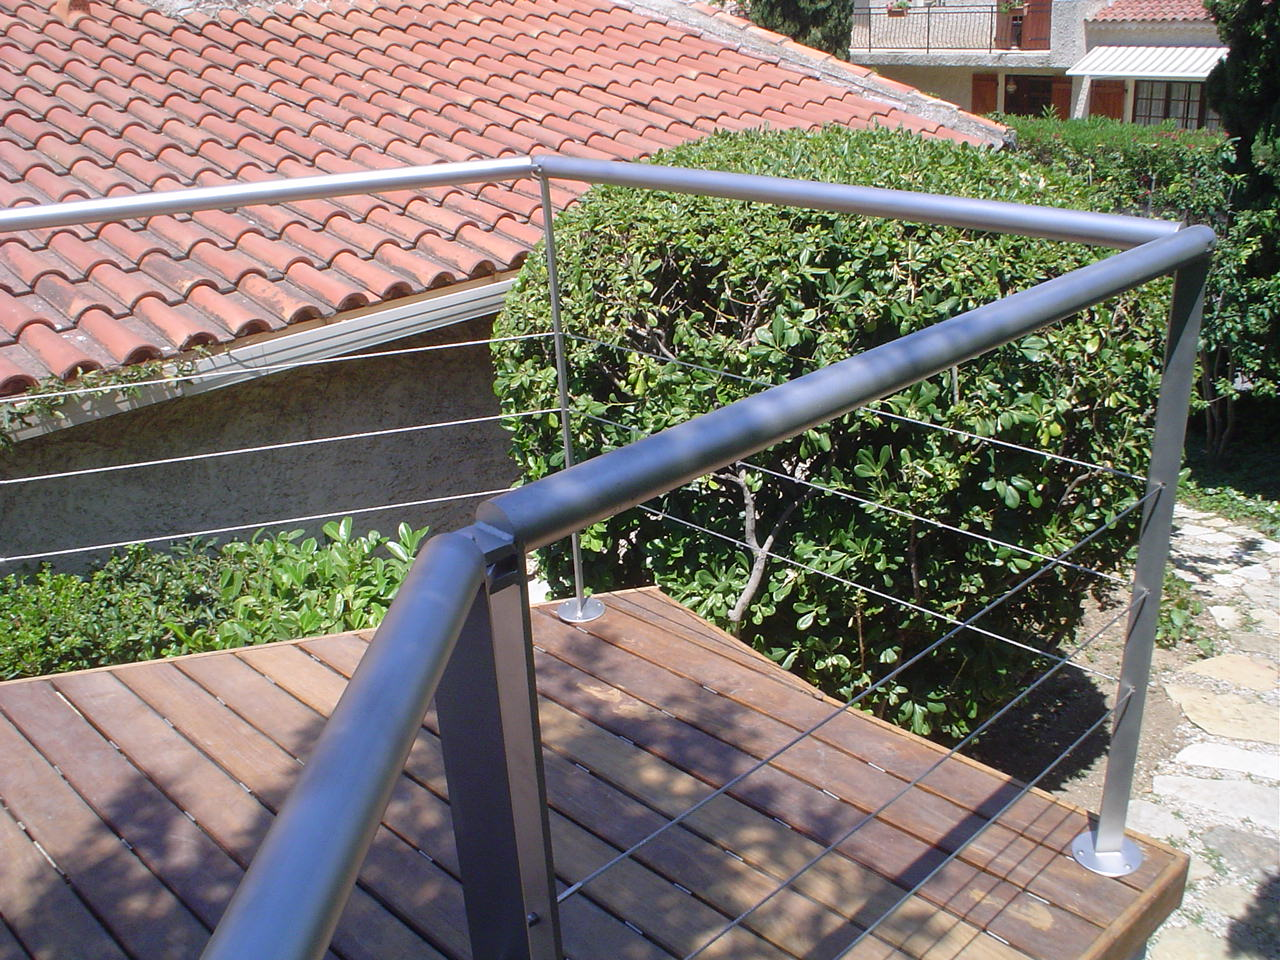 Garde corps safm localicsol for Cable pour terrasse